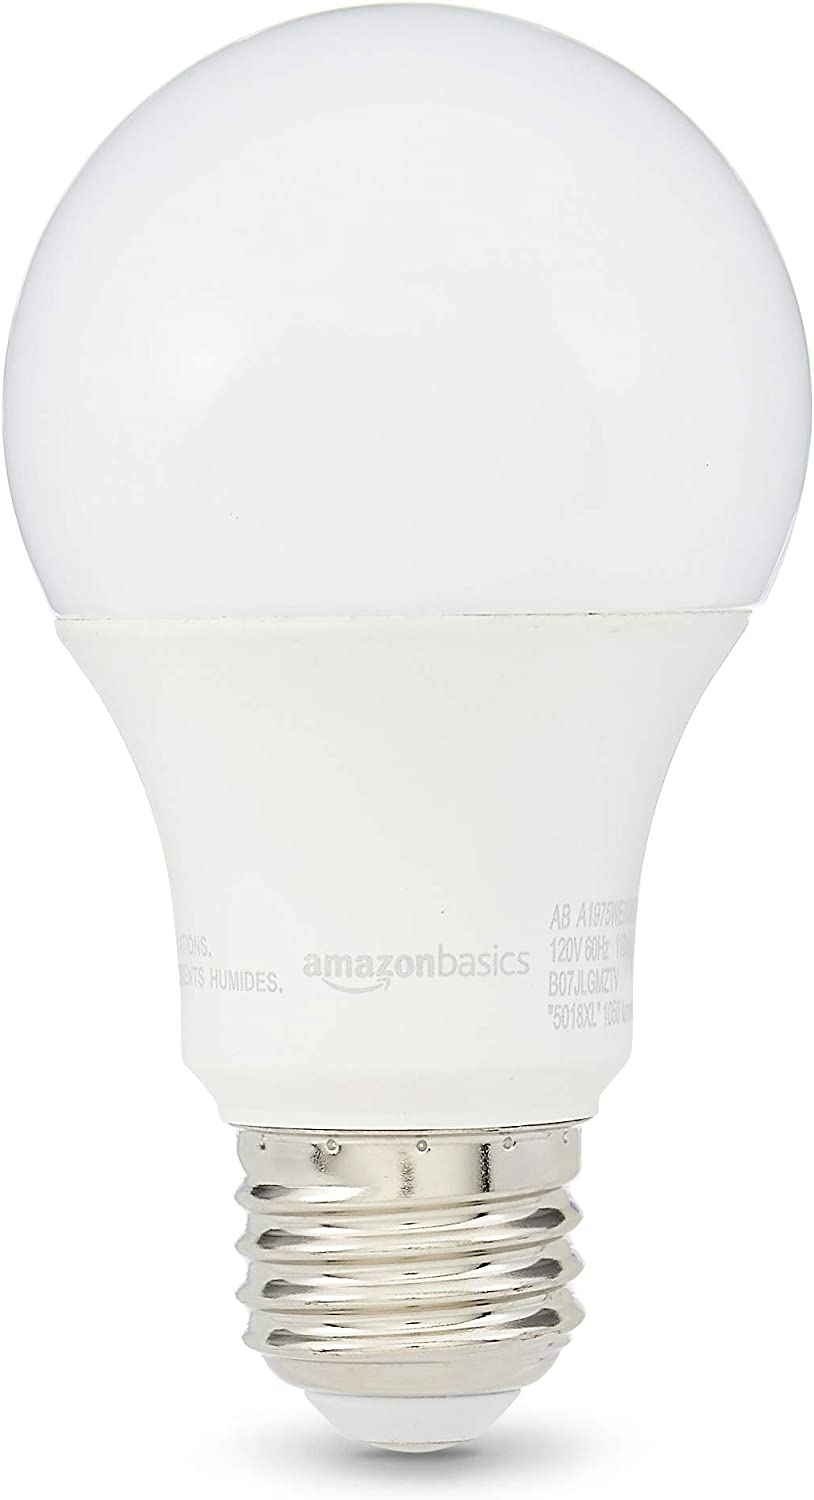 AmazonBasics 75W Equivalent, Daylight, Dimmable, 10,000 Hour Lifetime, A19 LED Light Bulb | 6-Pack